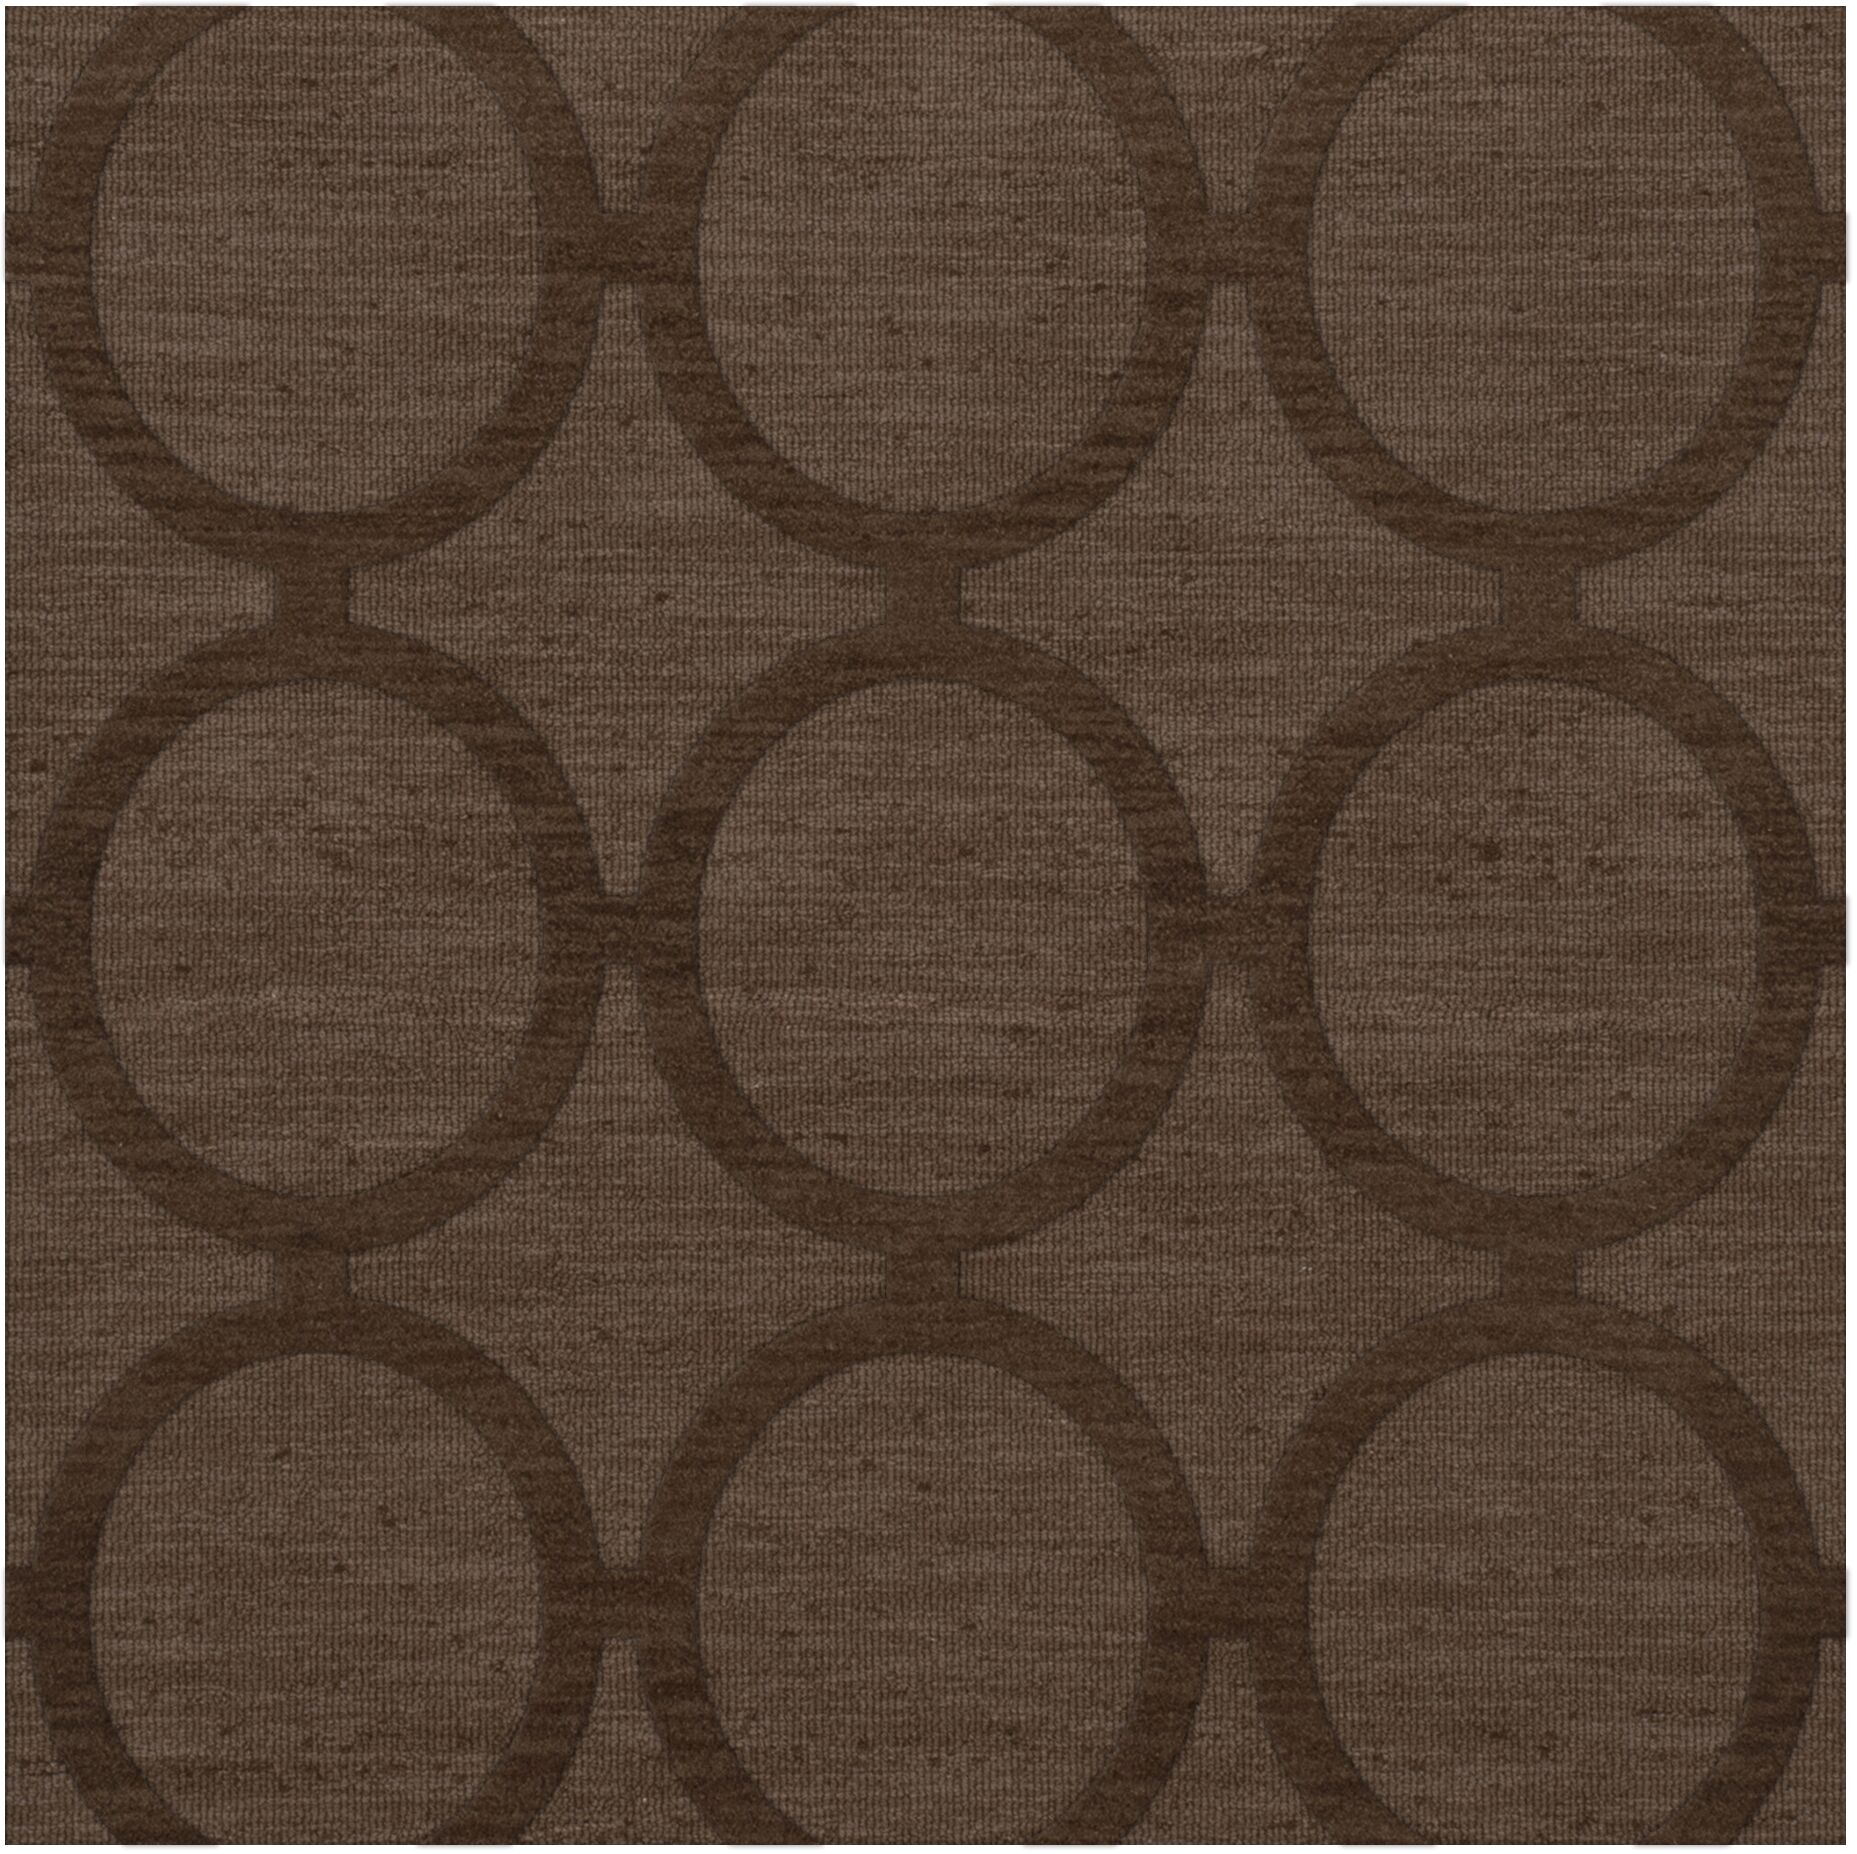 Dover Tufted Wool Mocha Area Rug Rug Size: Square 8'